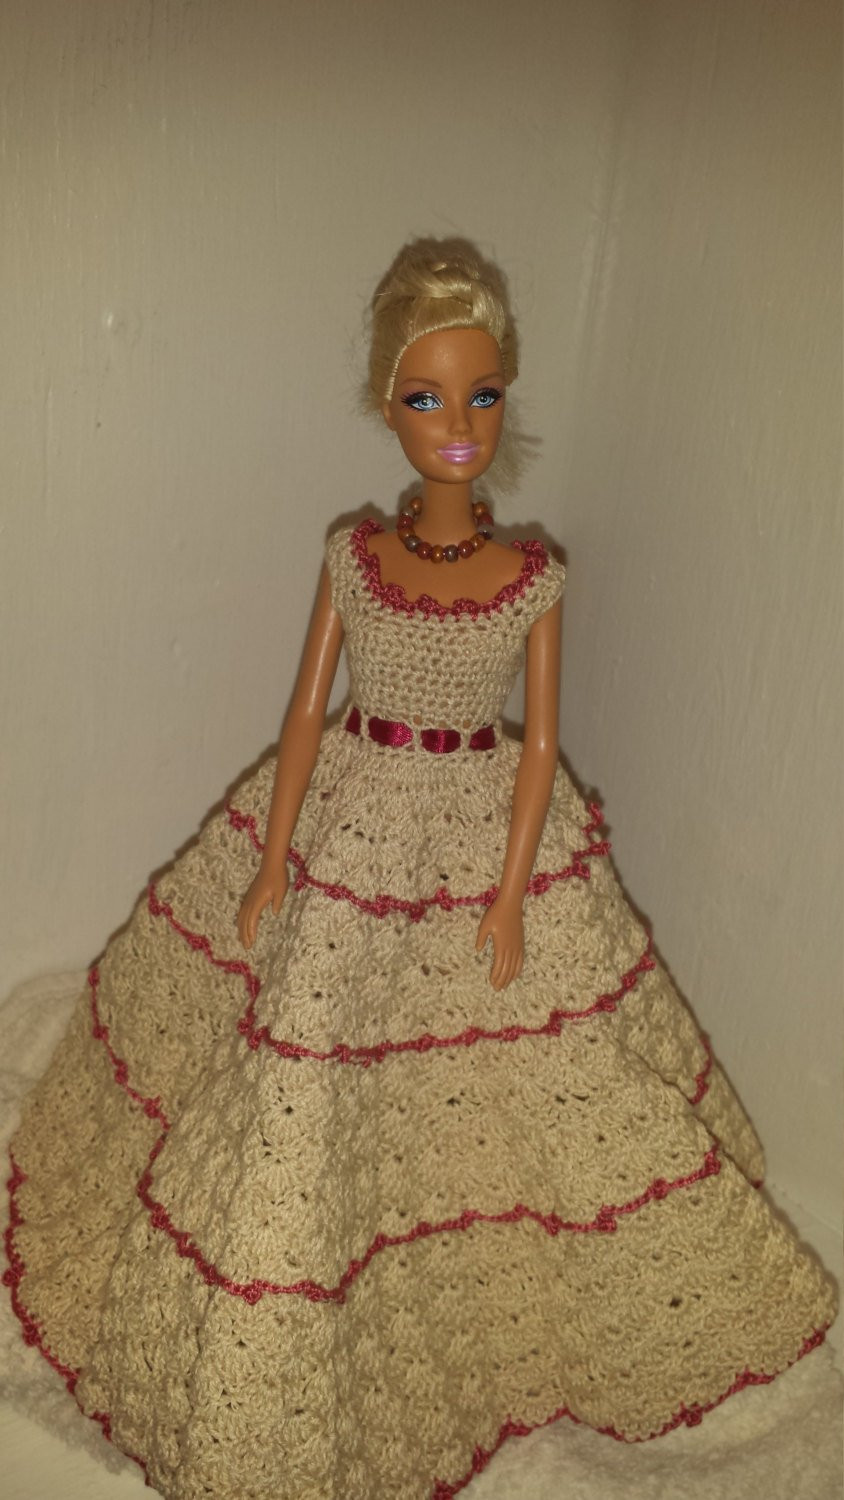 Crochet Outfits Beautiful Crochet Barbie Clothes Barbie Doll Outfit Handmade Barbie Of Great 42 Ideas Crochet Outfits